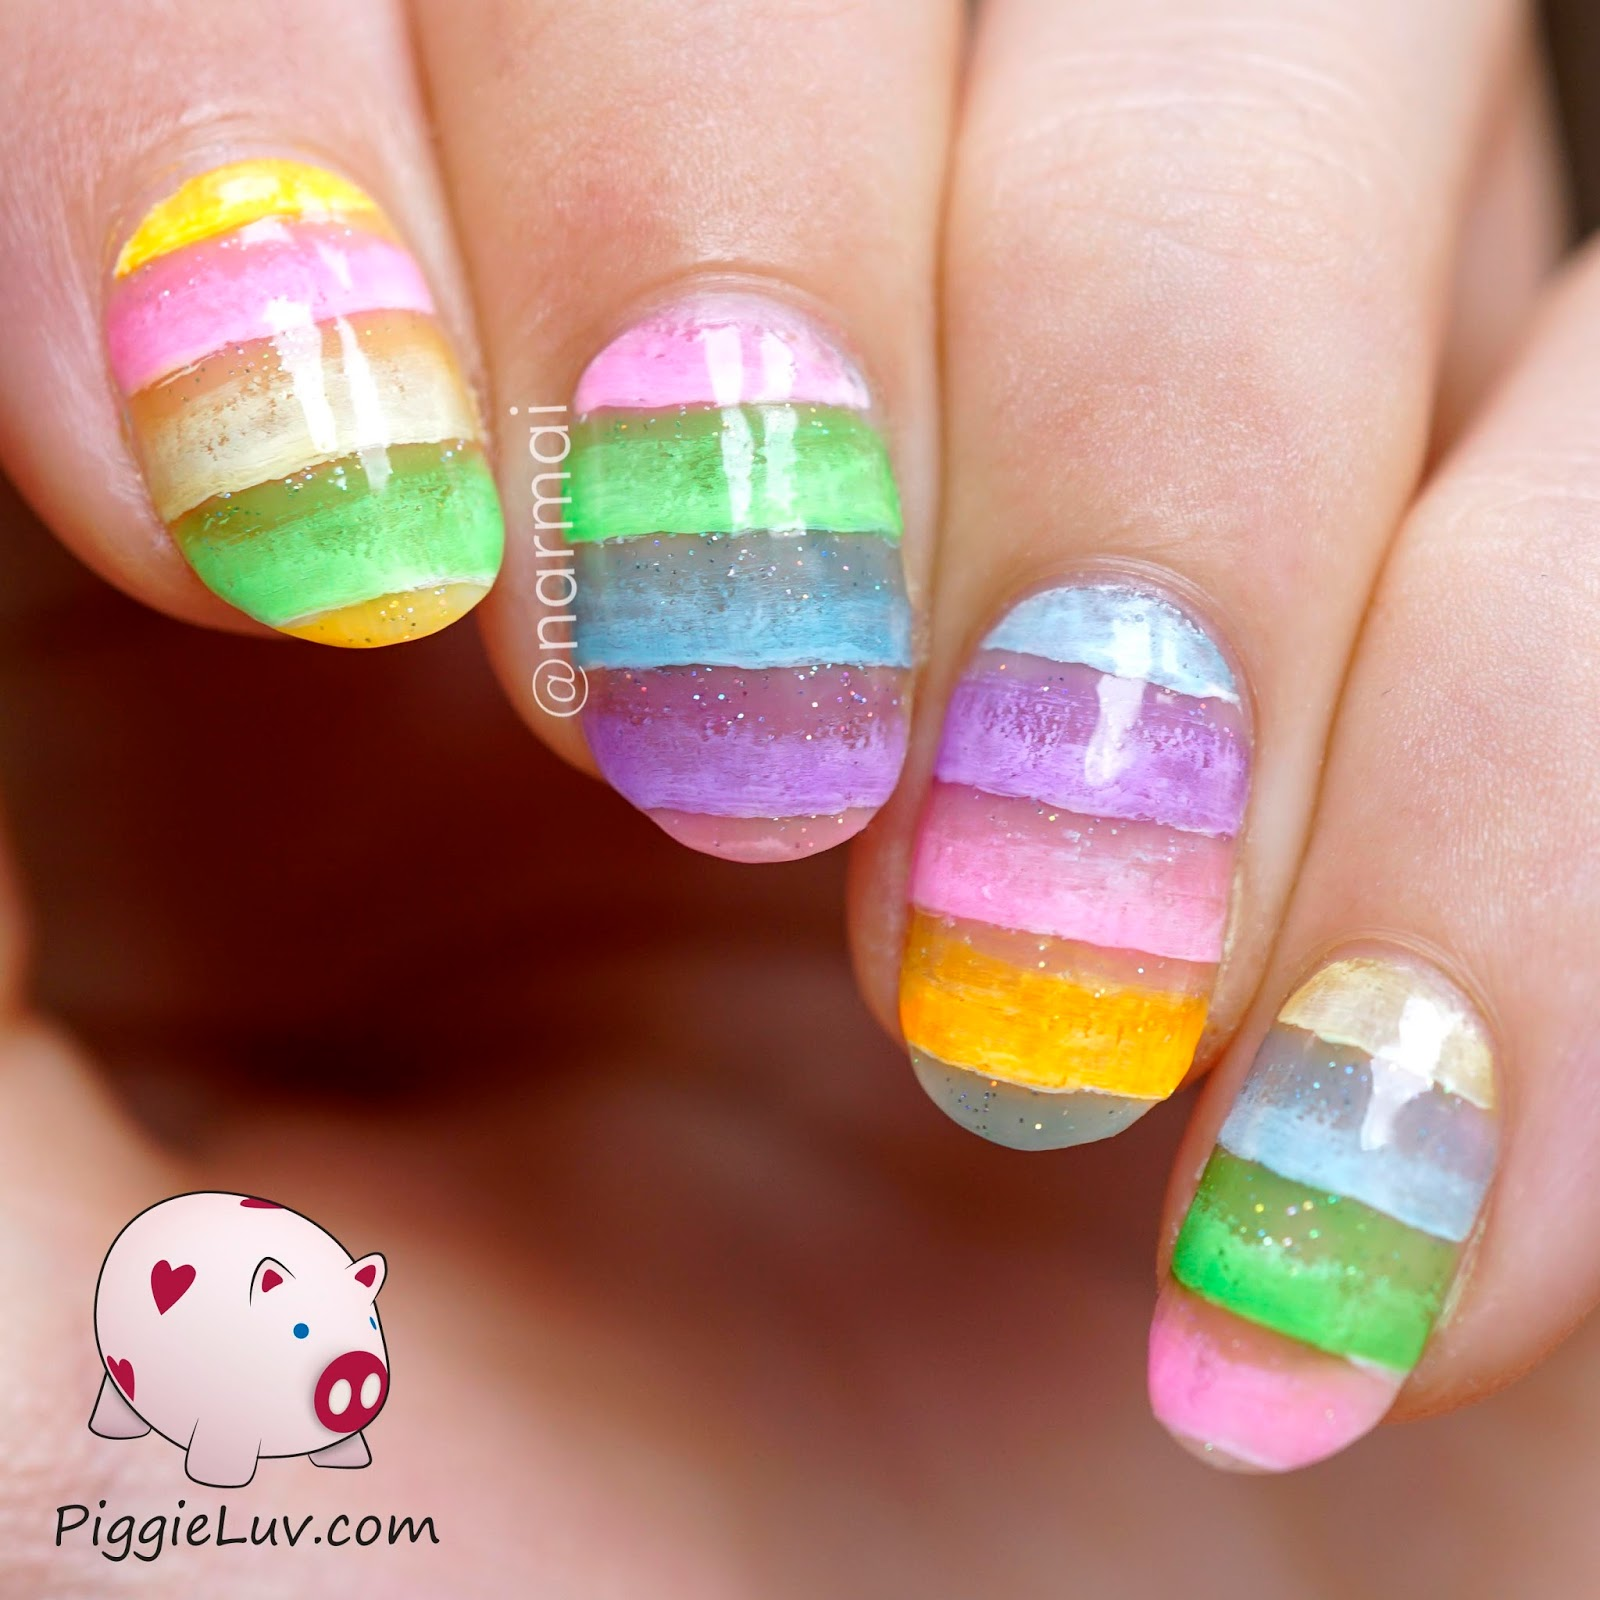 PiggieLuv: Jelly dessert nail art with OPI sheer tints